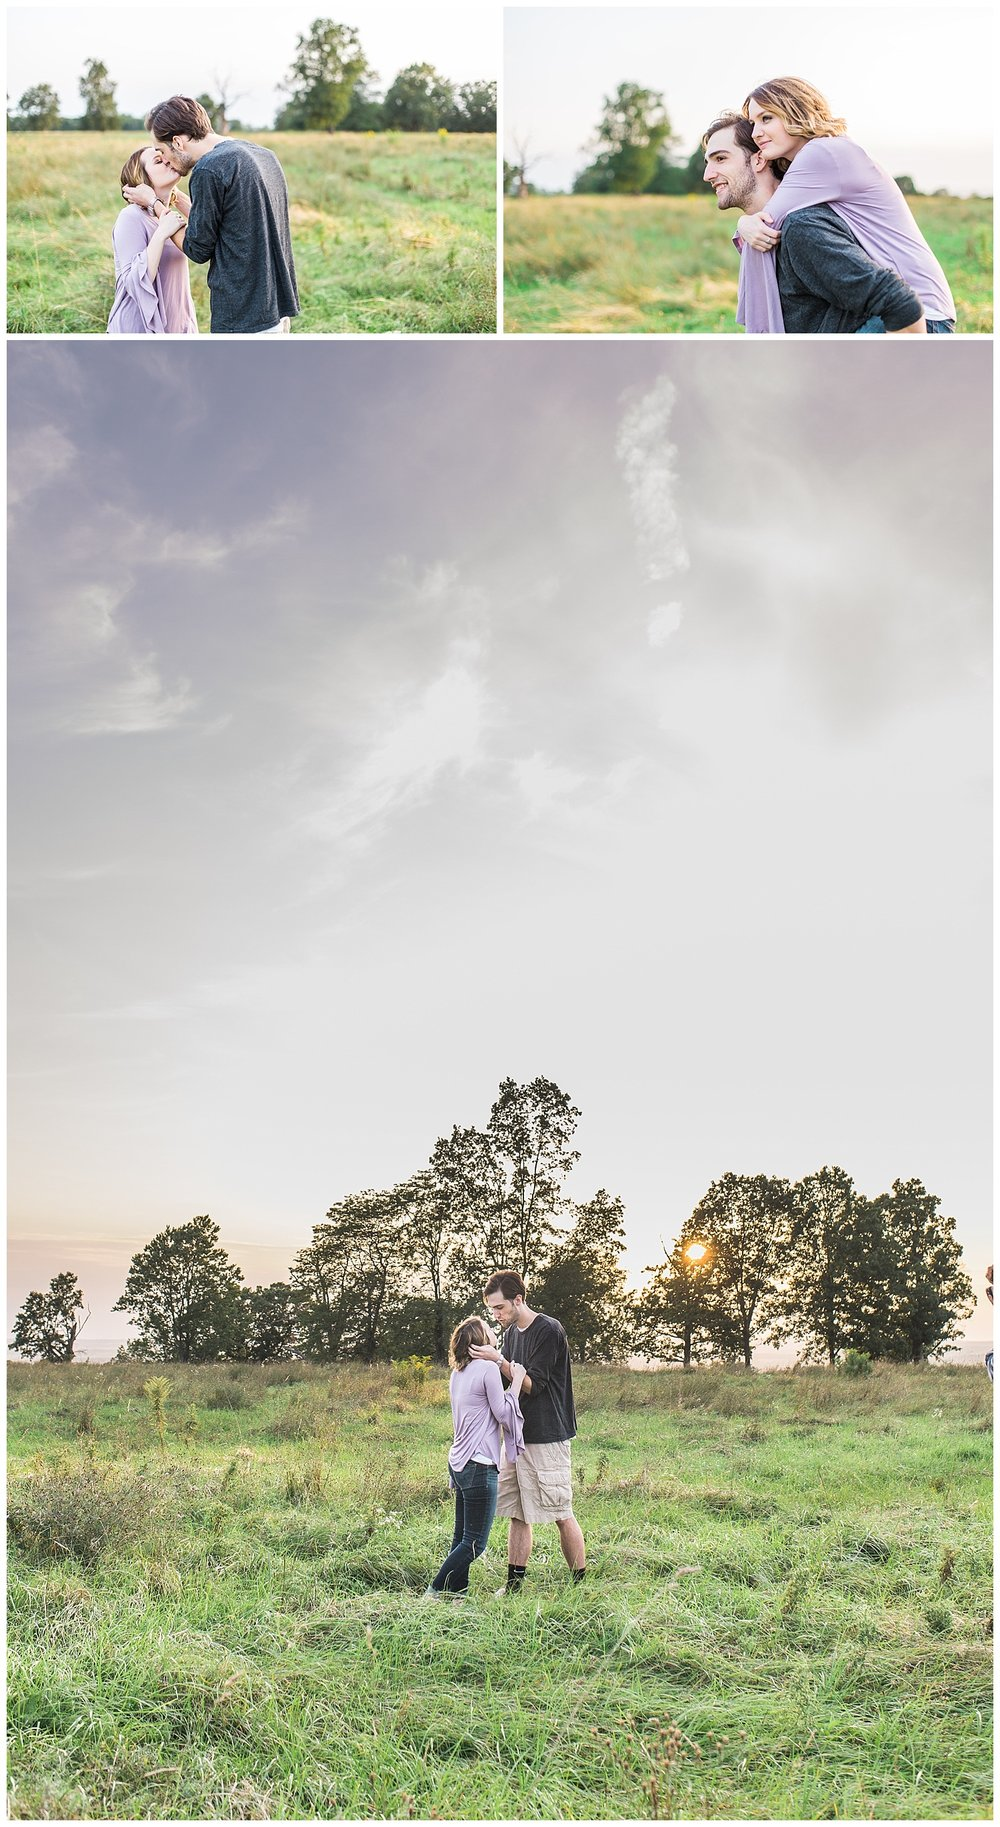 Tanya and Ryan - Sweetheart session - Lass & Beau - Geneseo NY-311_Buffalo wedding photography.jpg